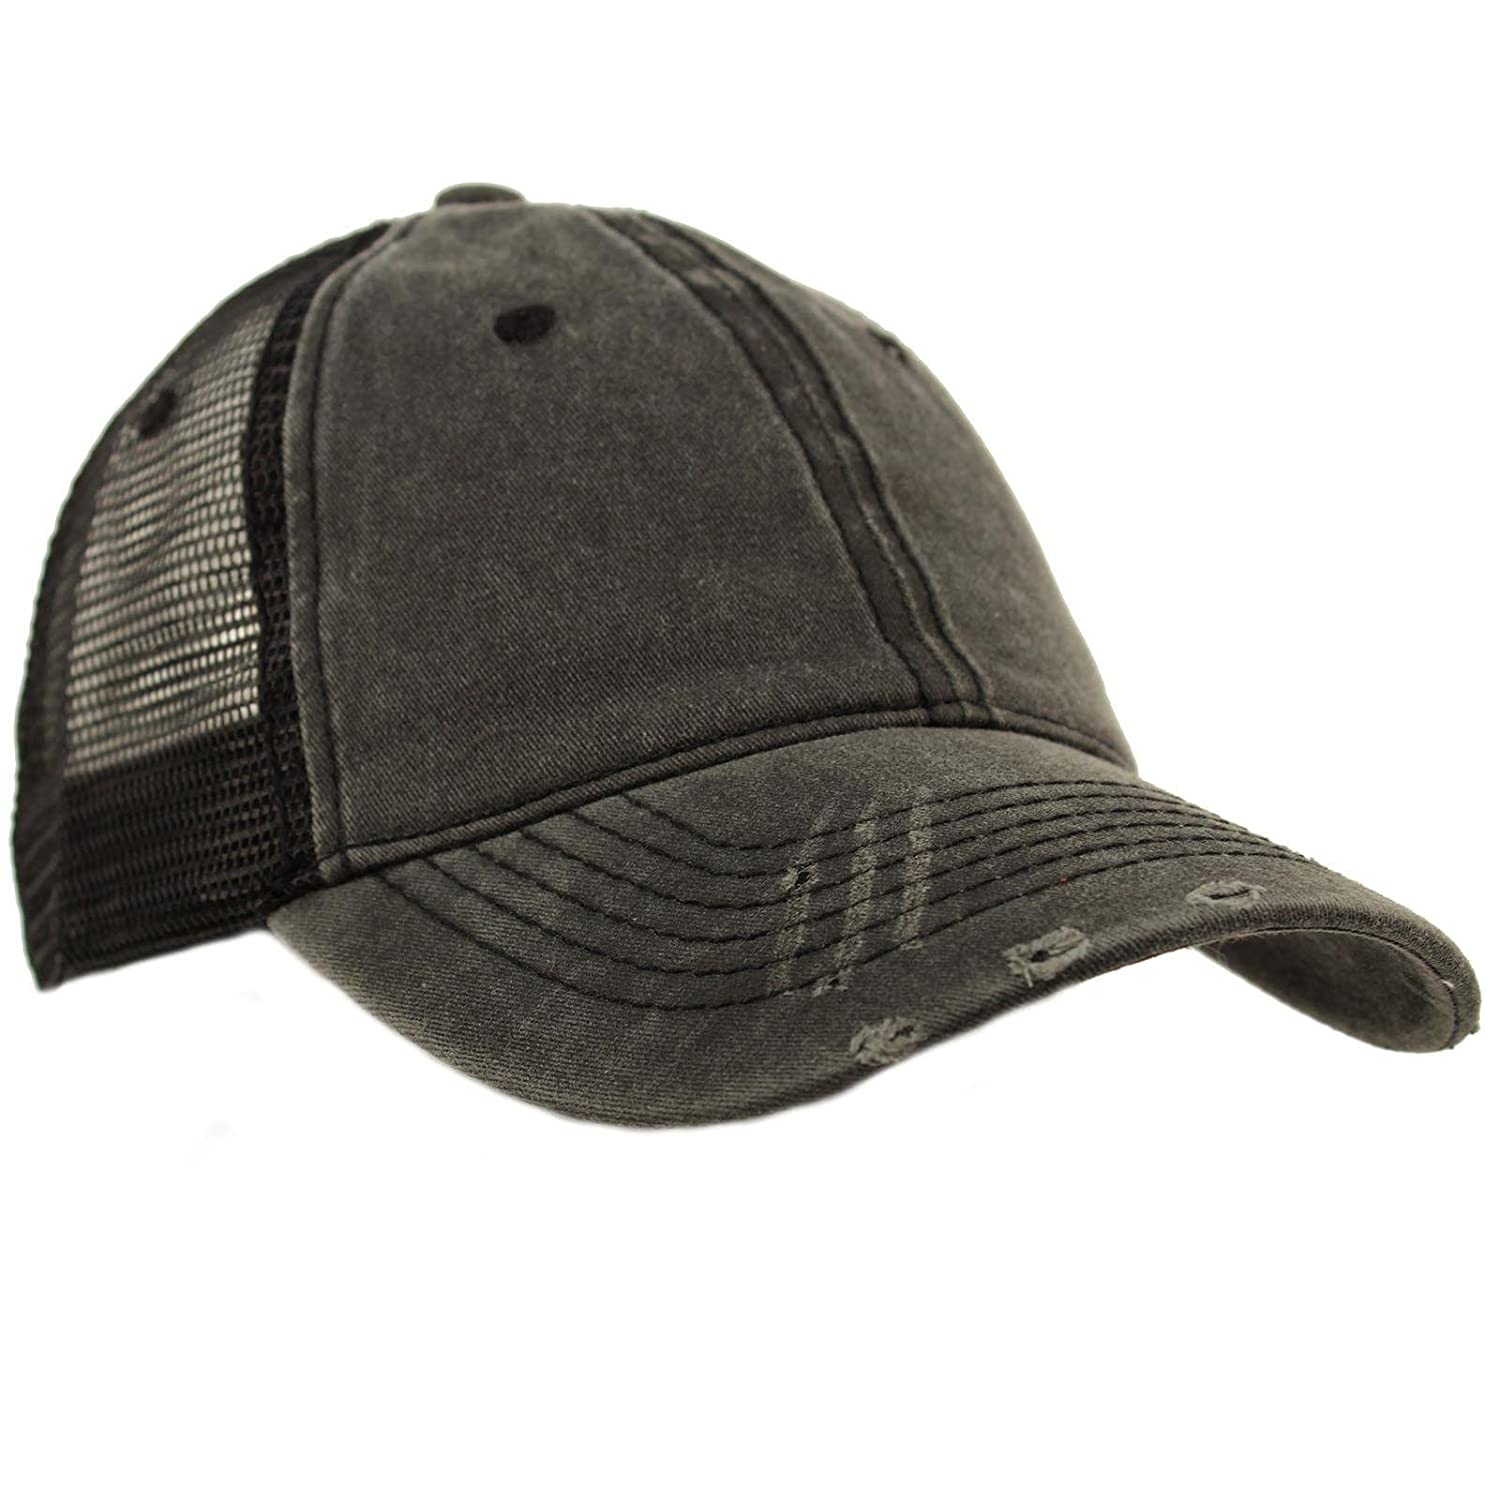 Unisex Distressed Low Profile Trucker Mesh Summer Baseball Sun Cap Hat  Black at Amazon Men s Clothing store  e399f782a